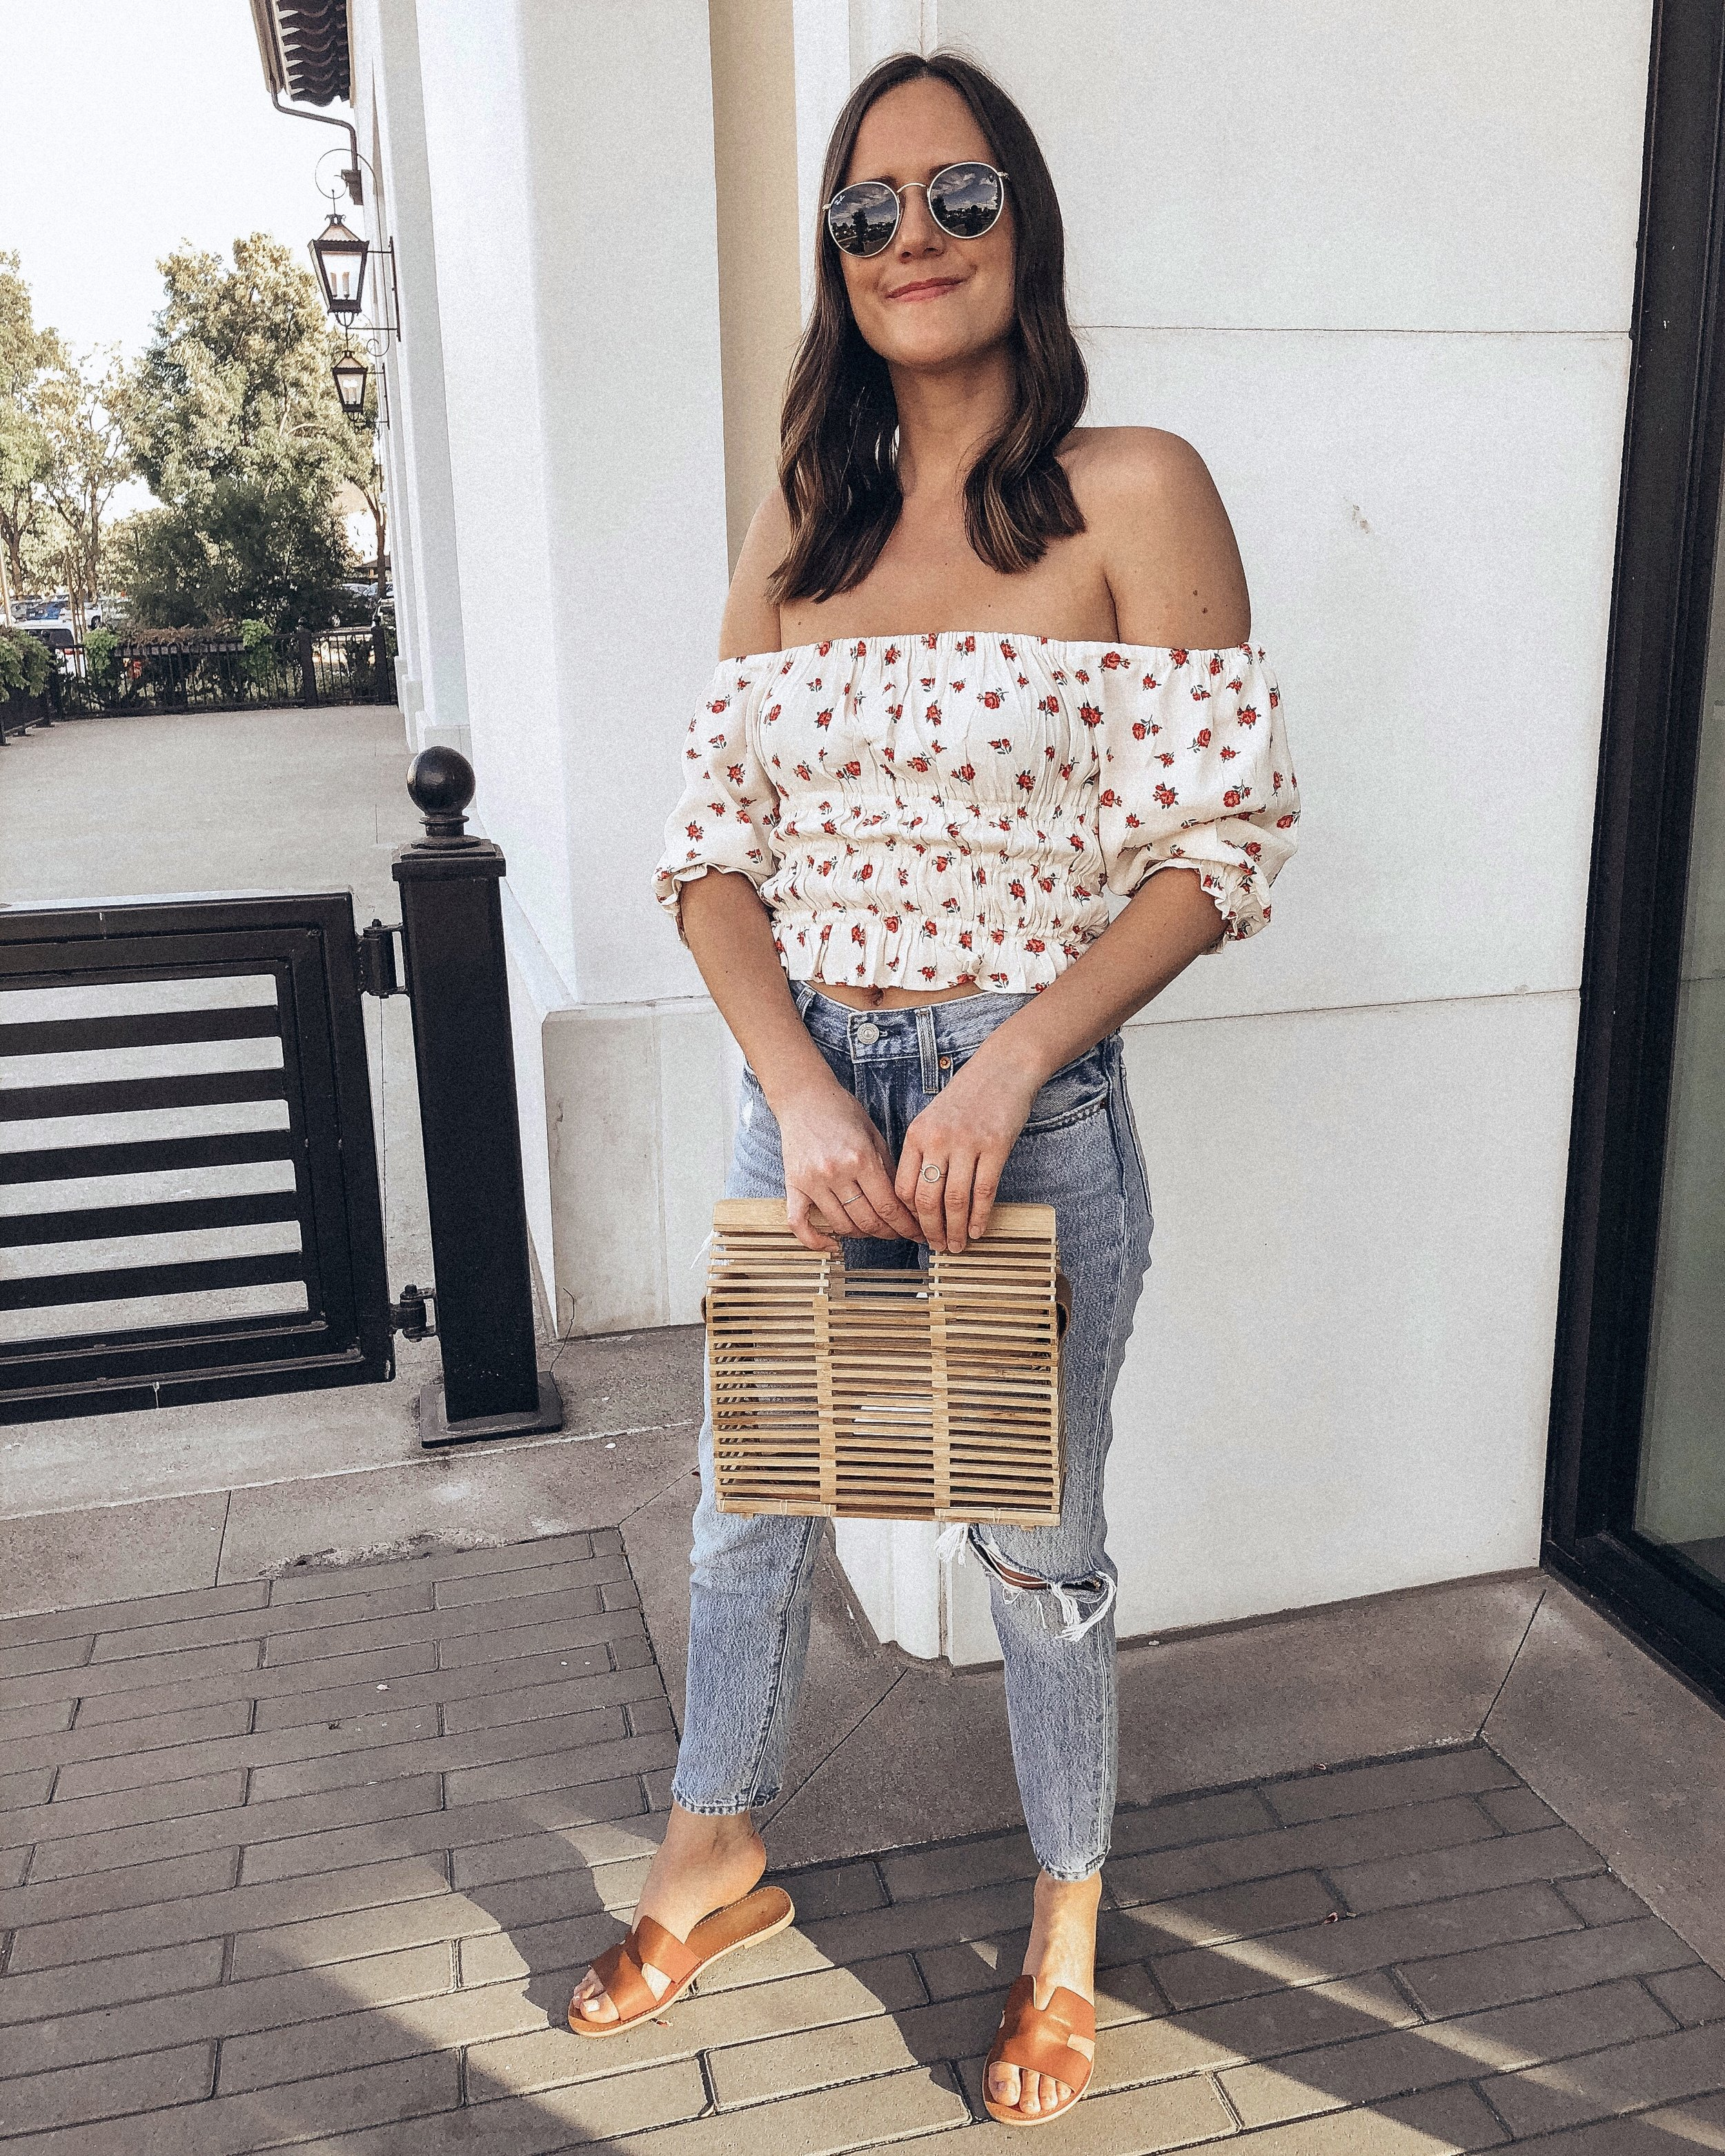 Outfit Details:  Vici Top  c/o | Levi's Jeans  HERE  and  HERE  |  Vici Sandals  c/o |  Vici Bag  c/o |  Ray-Ban Sunglasses  |  Madewell Circle Ring  |  Gorjana Ring